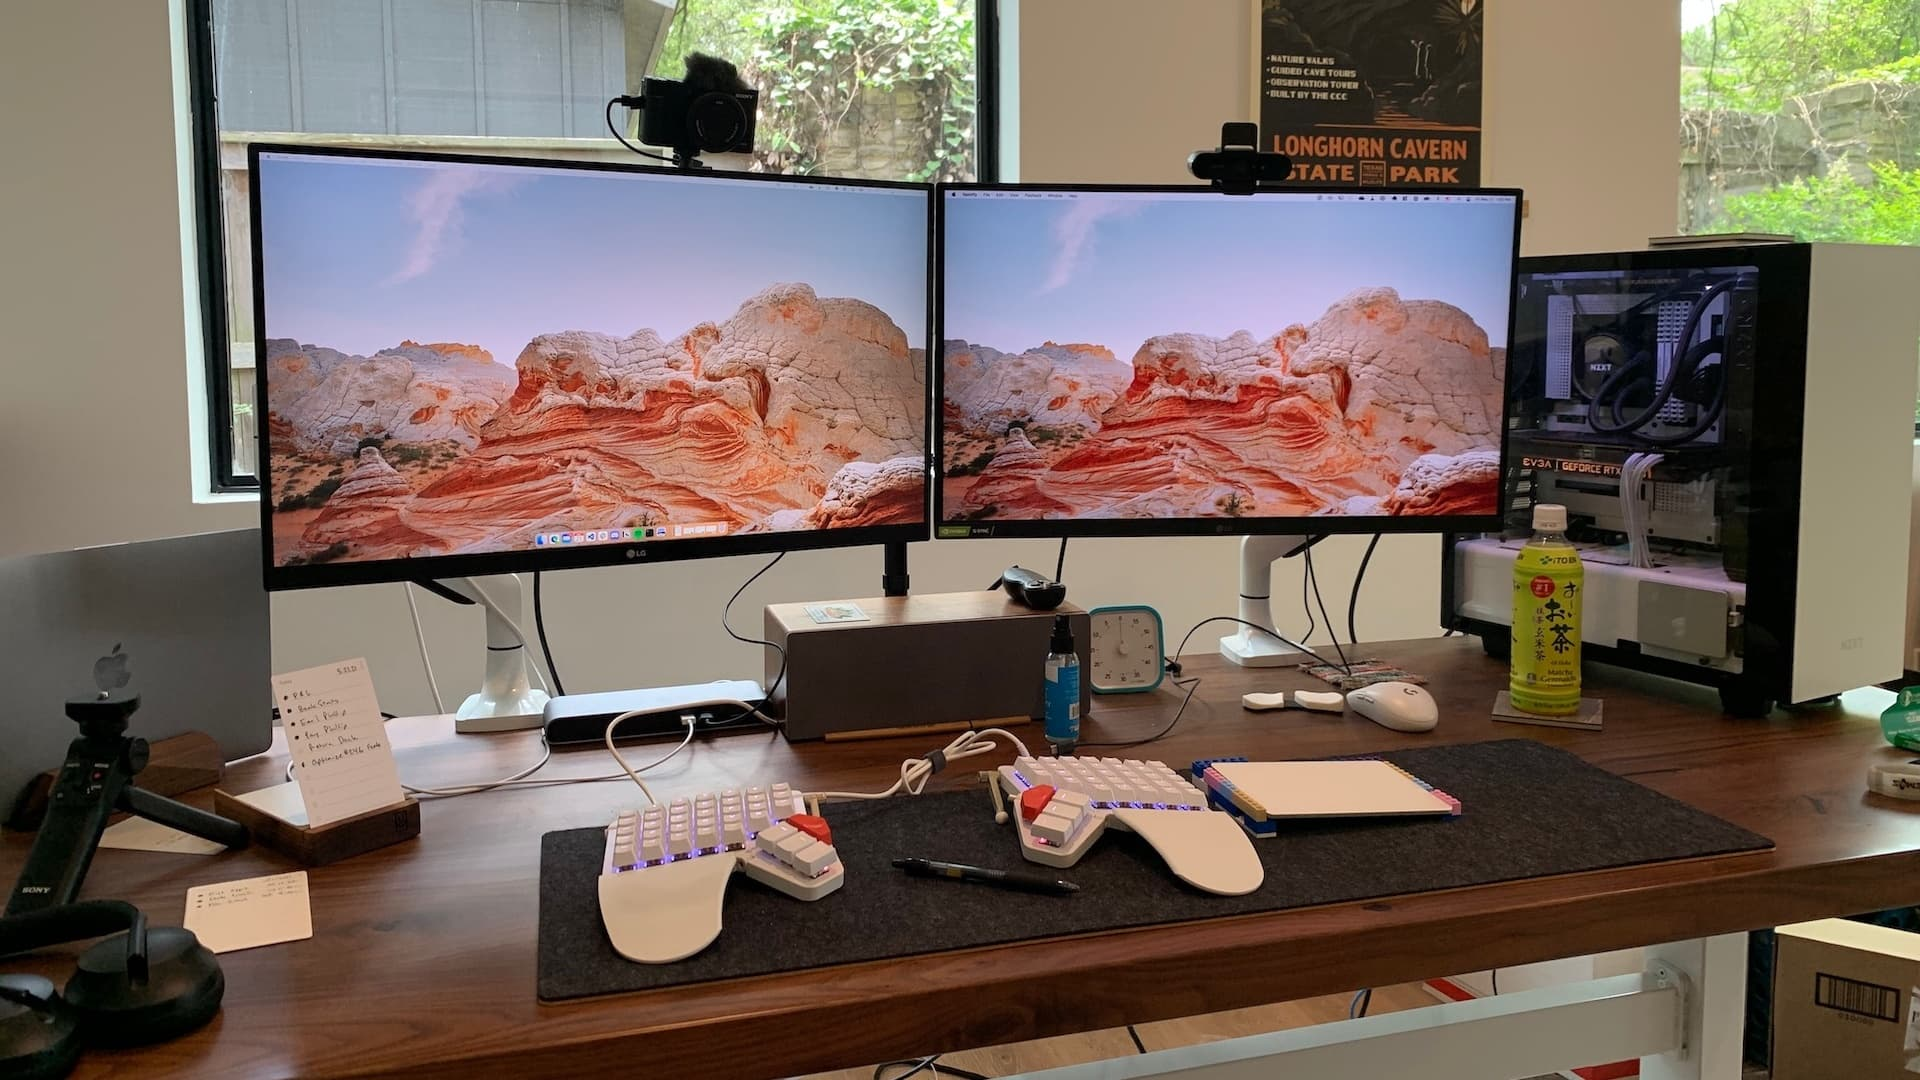 Two side-by-side 16:9 displays